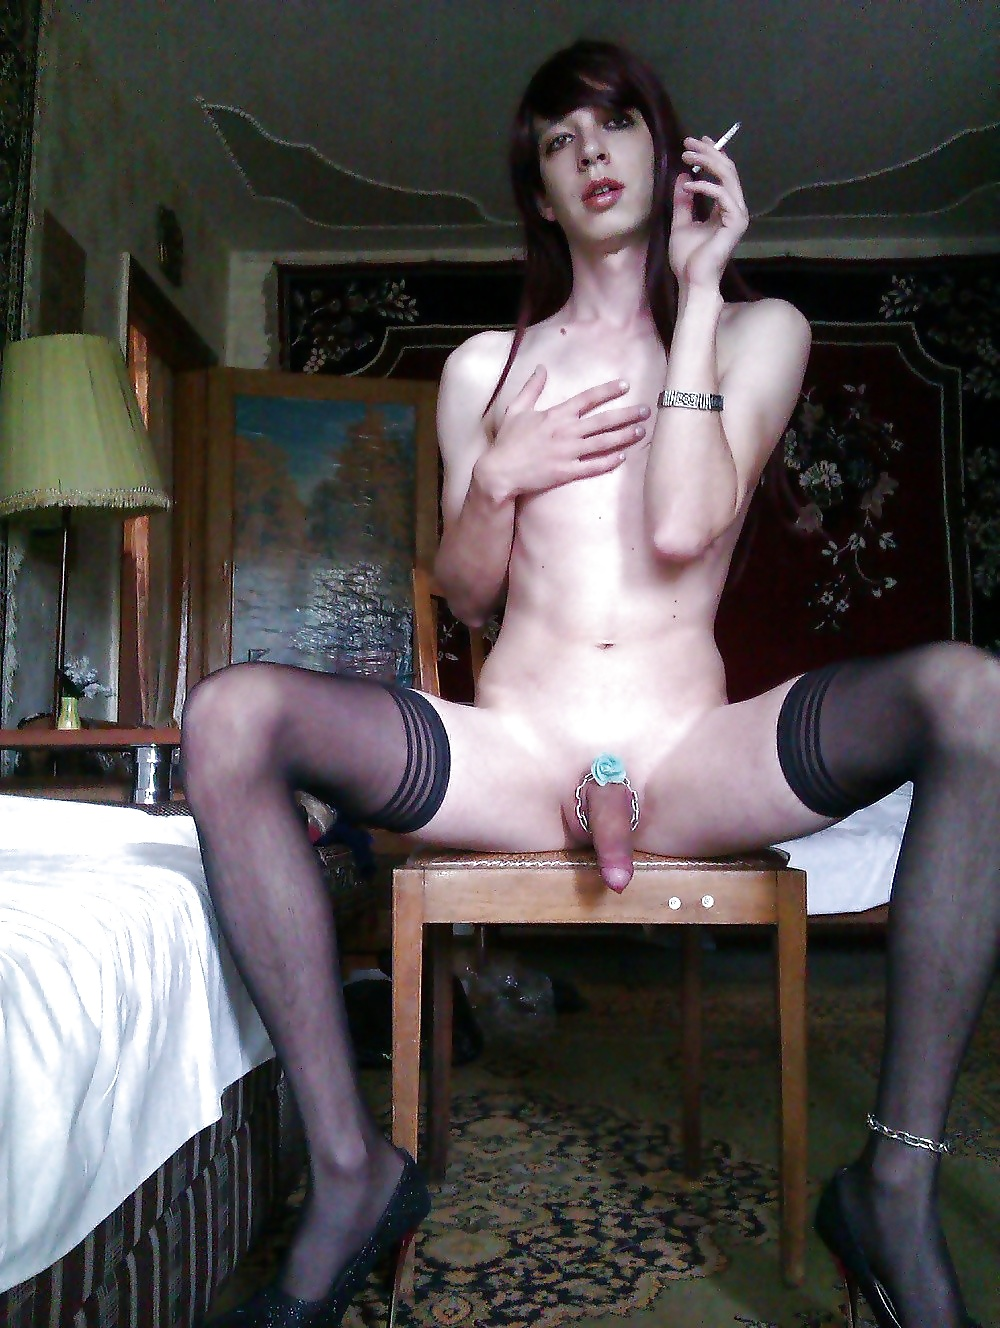 Crossdresser transsexual pics